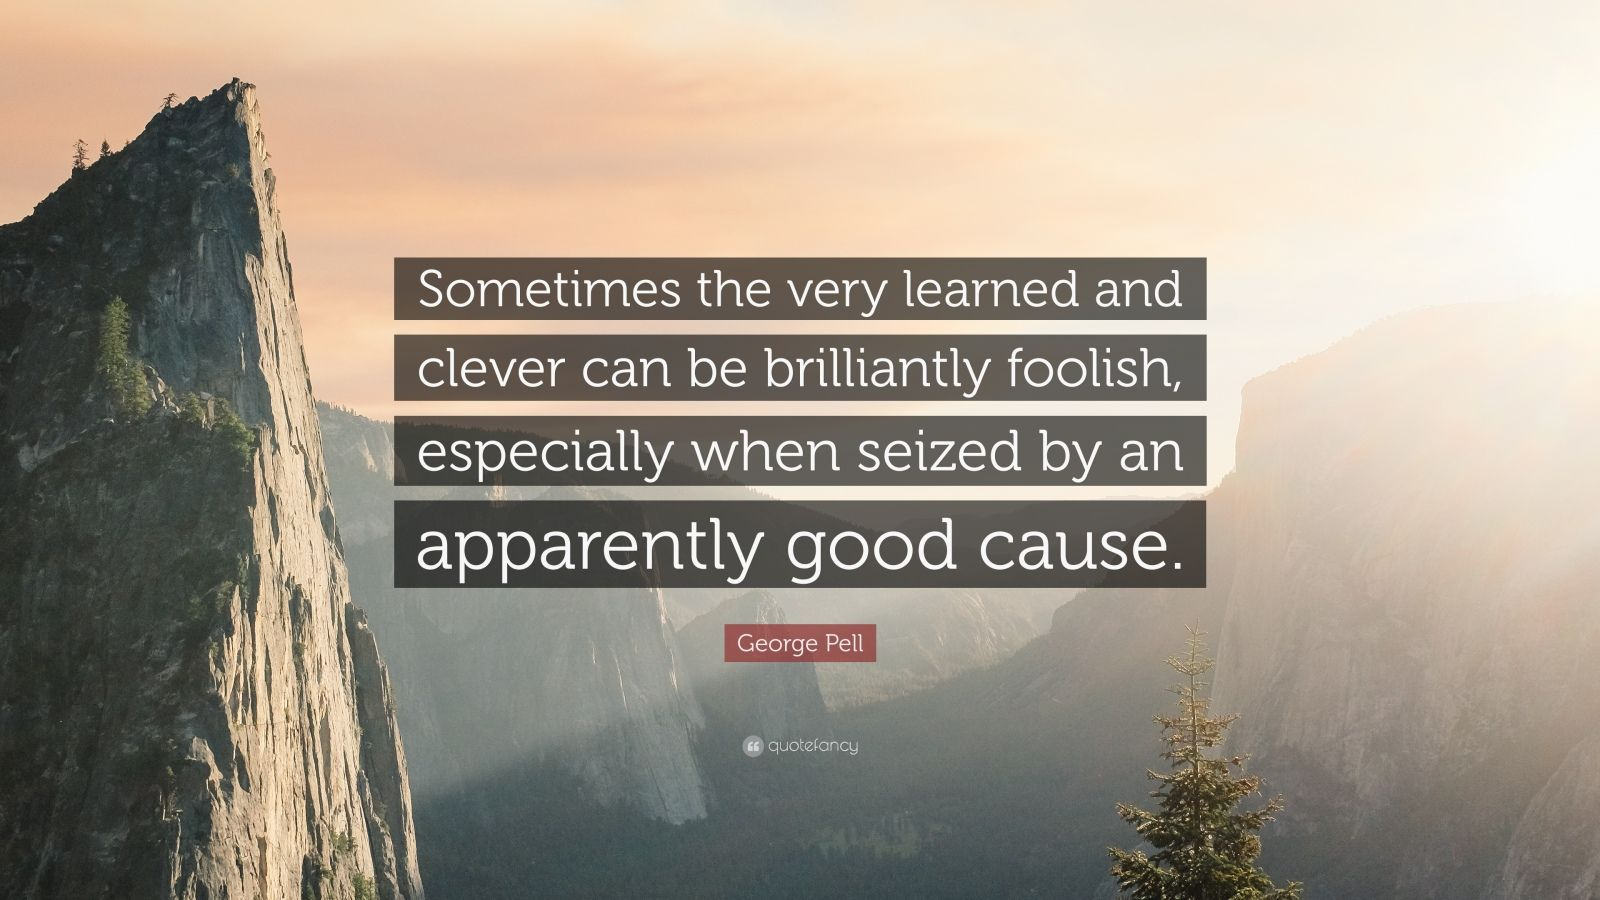 """George Pell Quote: """"Sometimes the very learned and clever can be brilliantly foolish, especially when seized by an apparently good cause."""""""